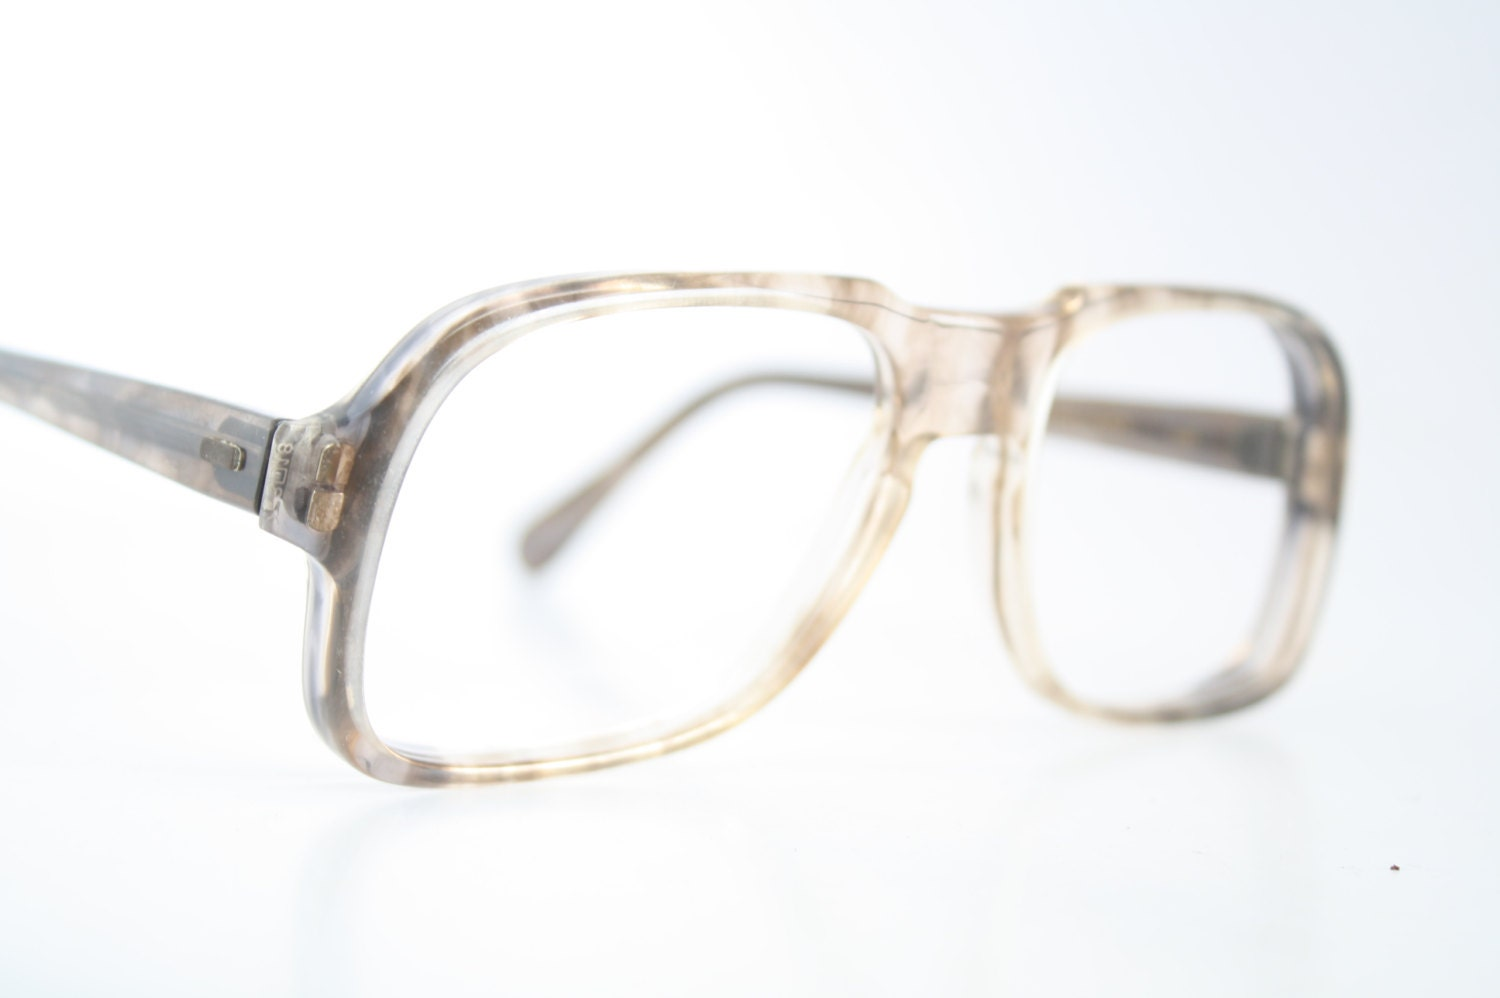 Old Eyeglass Frames New Lenses : Vintage Eyeglasses Univis Unused New Old Stock by PinceNezShop